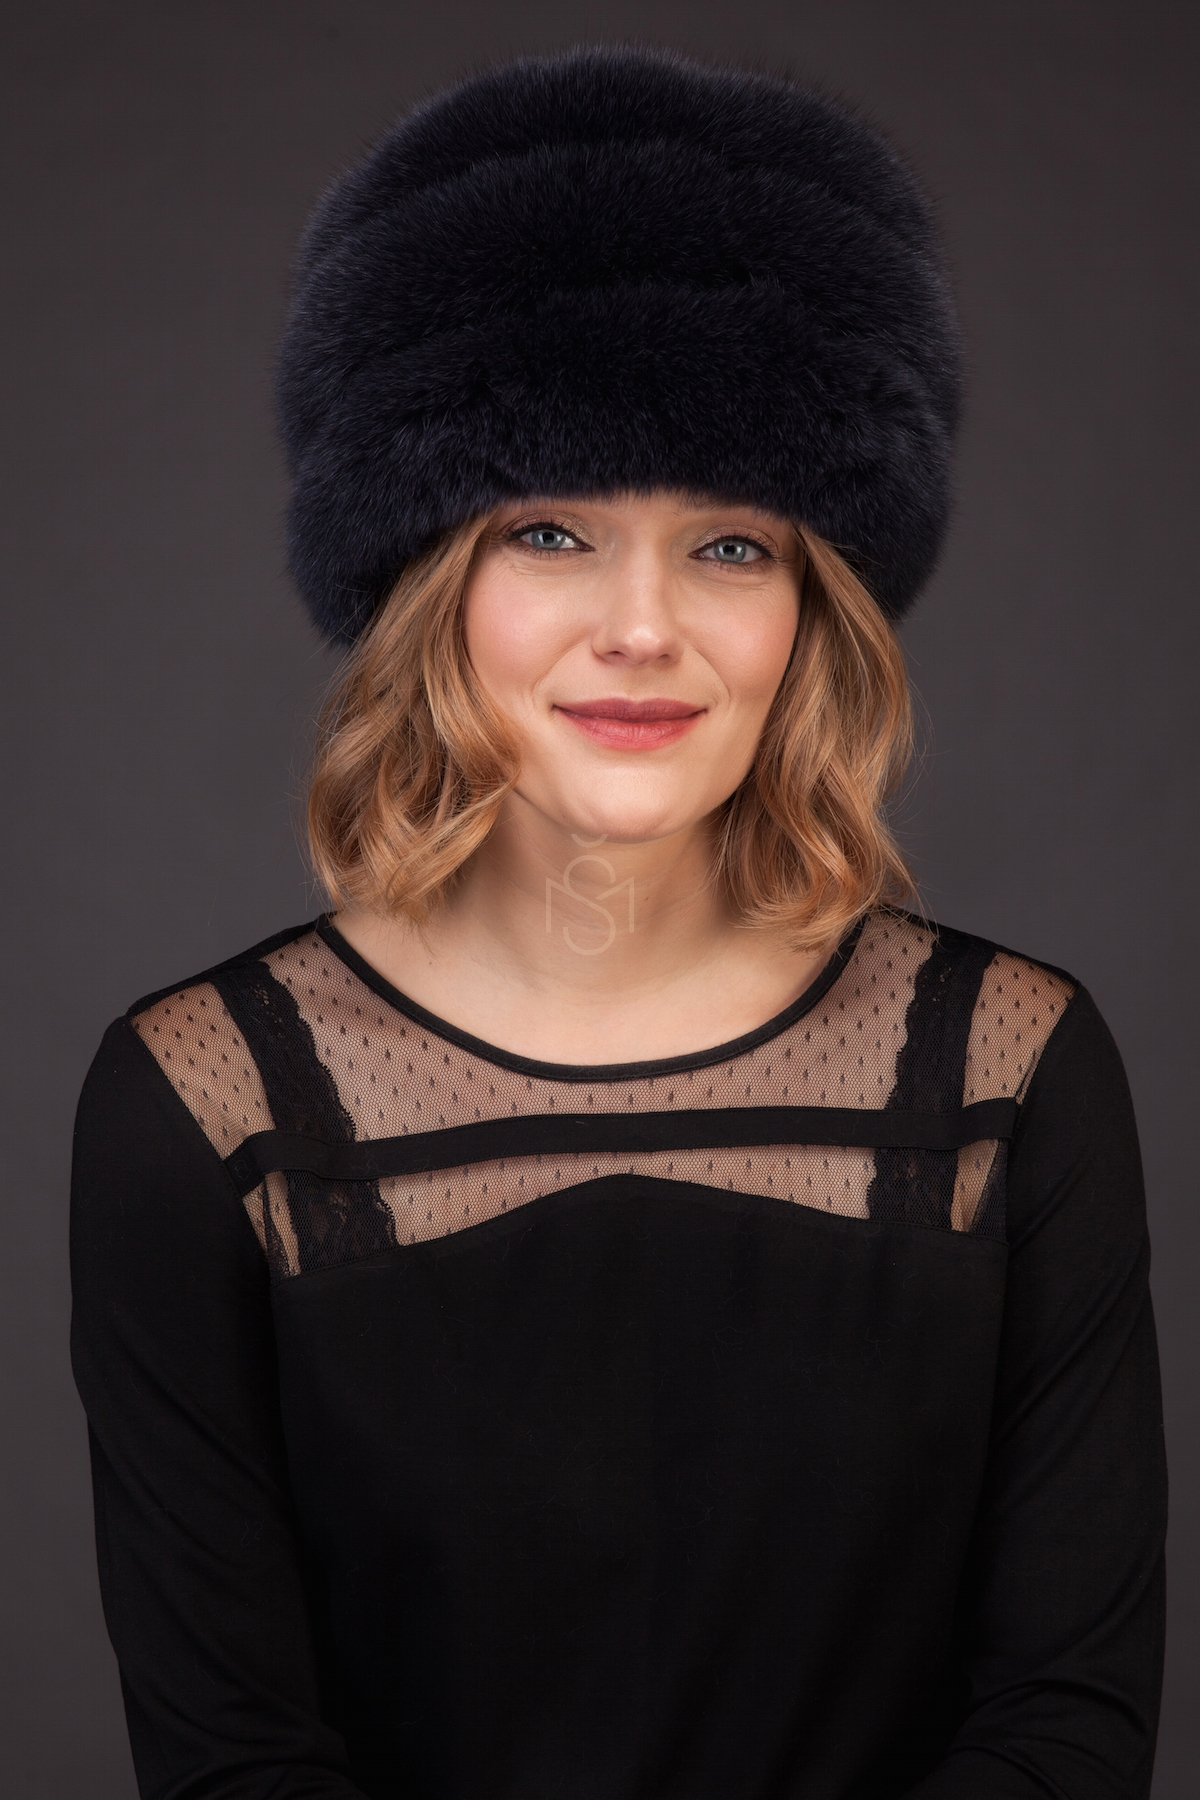 Fox fur hat with leather inserts blue made by SILTA MADA fur studio in Vilnius